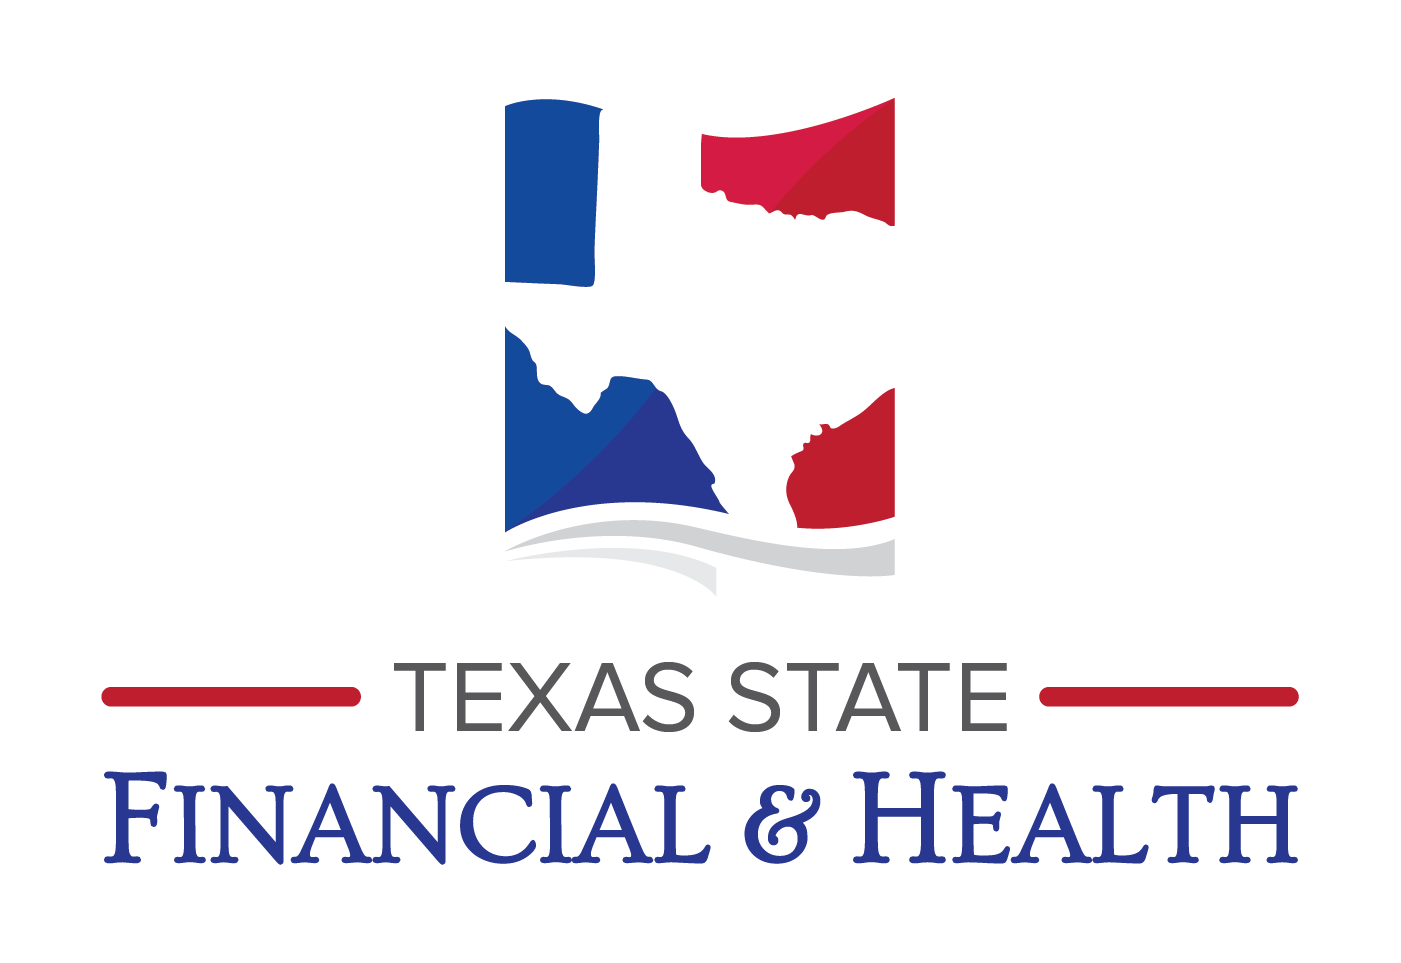 Texas State Financial & Health